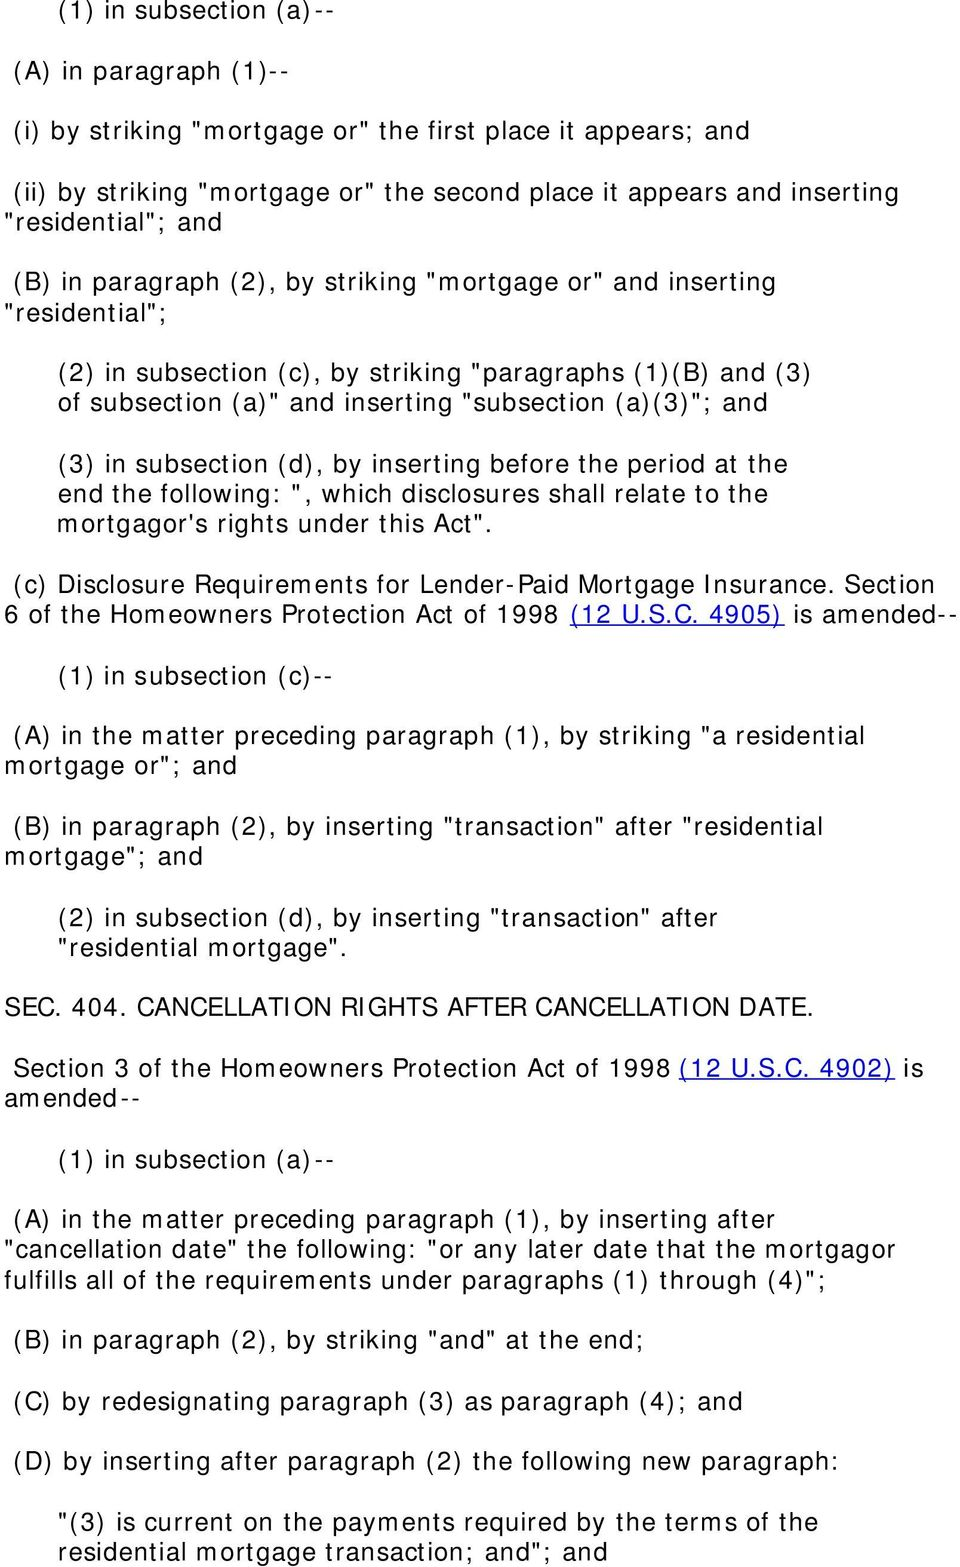 "and (3) in subsection (d), by inserting before the period at the end the following: "", which disclosures shall relate to the mortgagor's rights under this Act""."